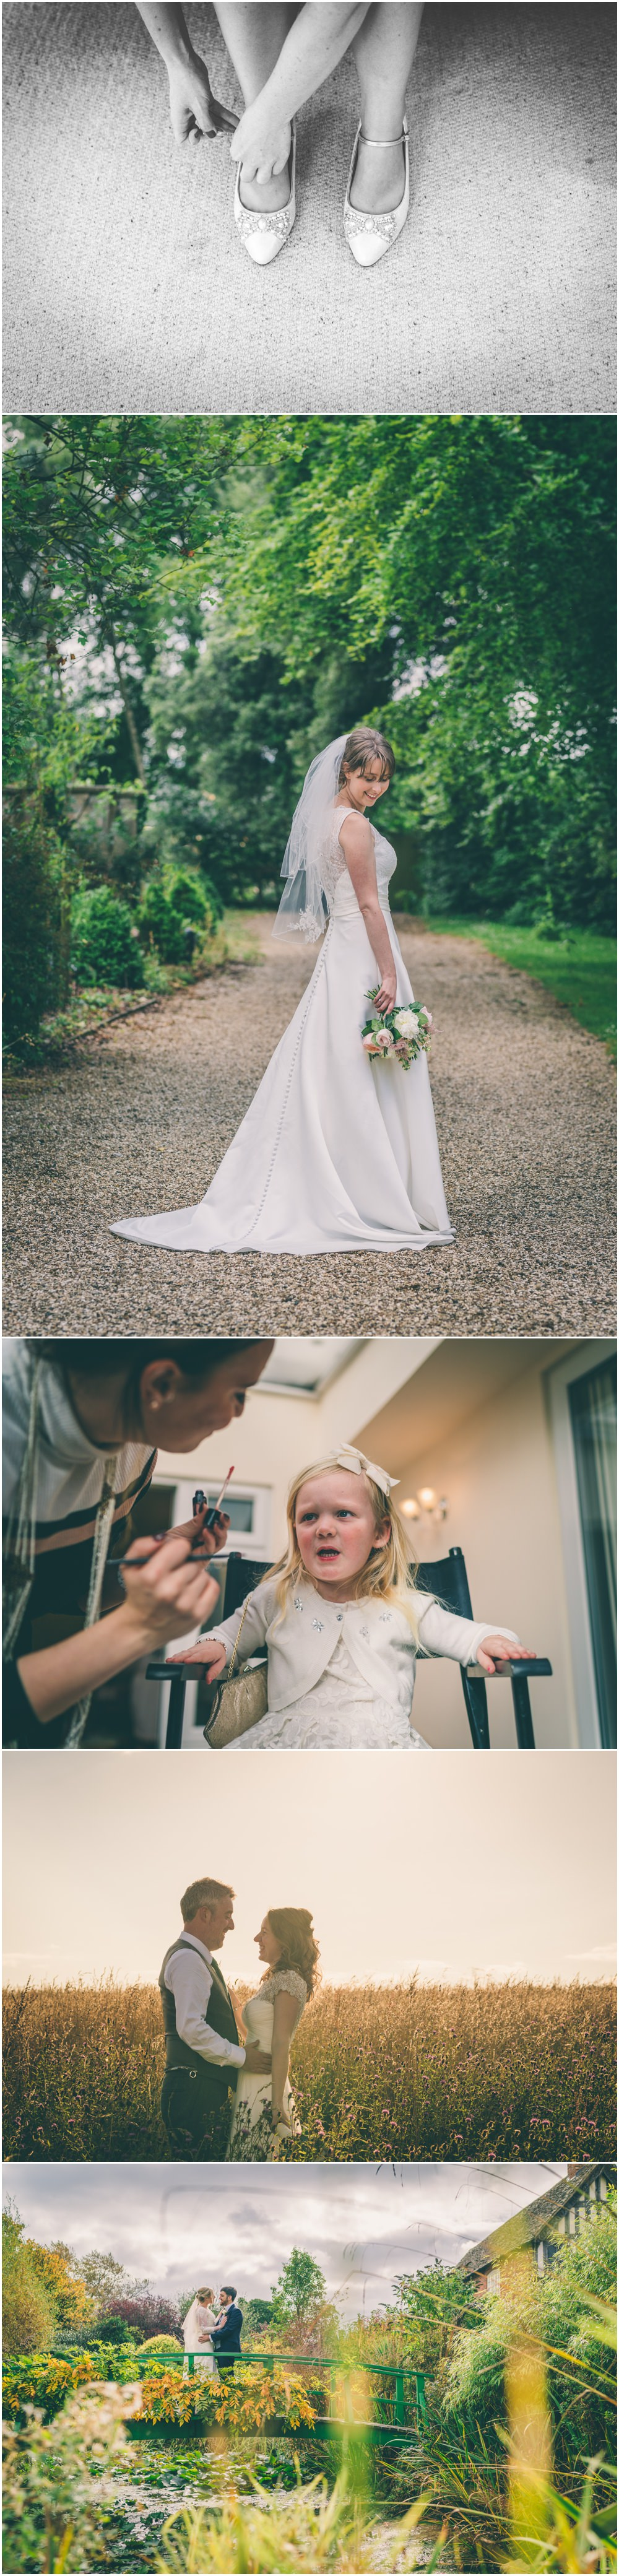 Rob Tarren Wedding Photography Review